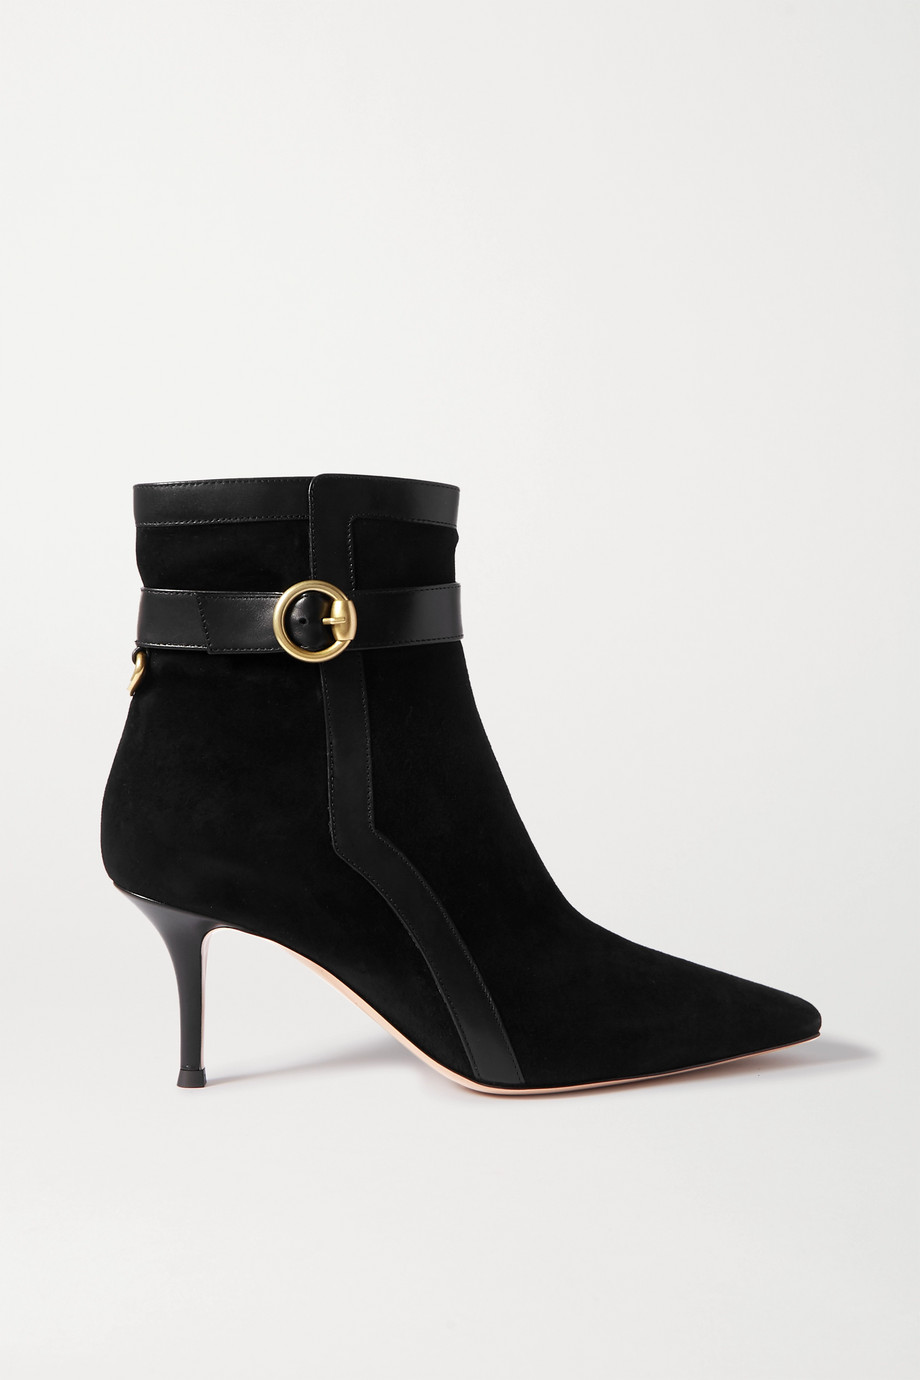 Gianvito Rossi 70 leather-trimmed suede ankle boots